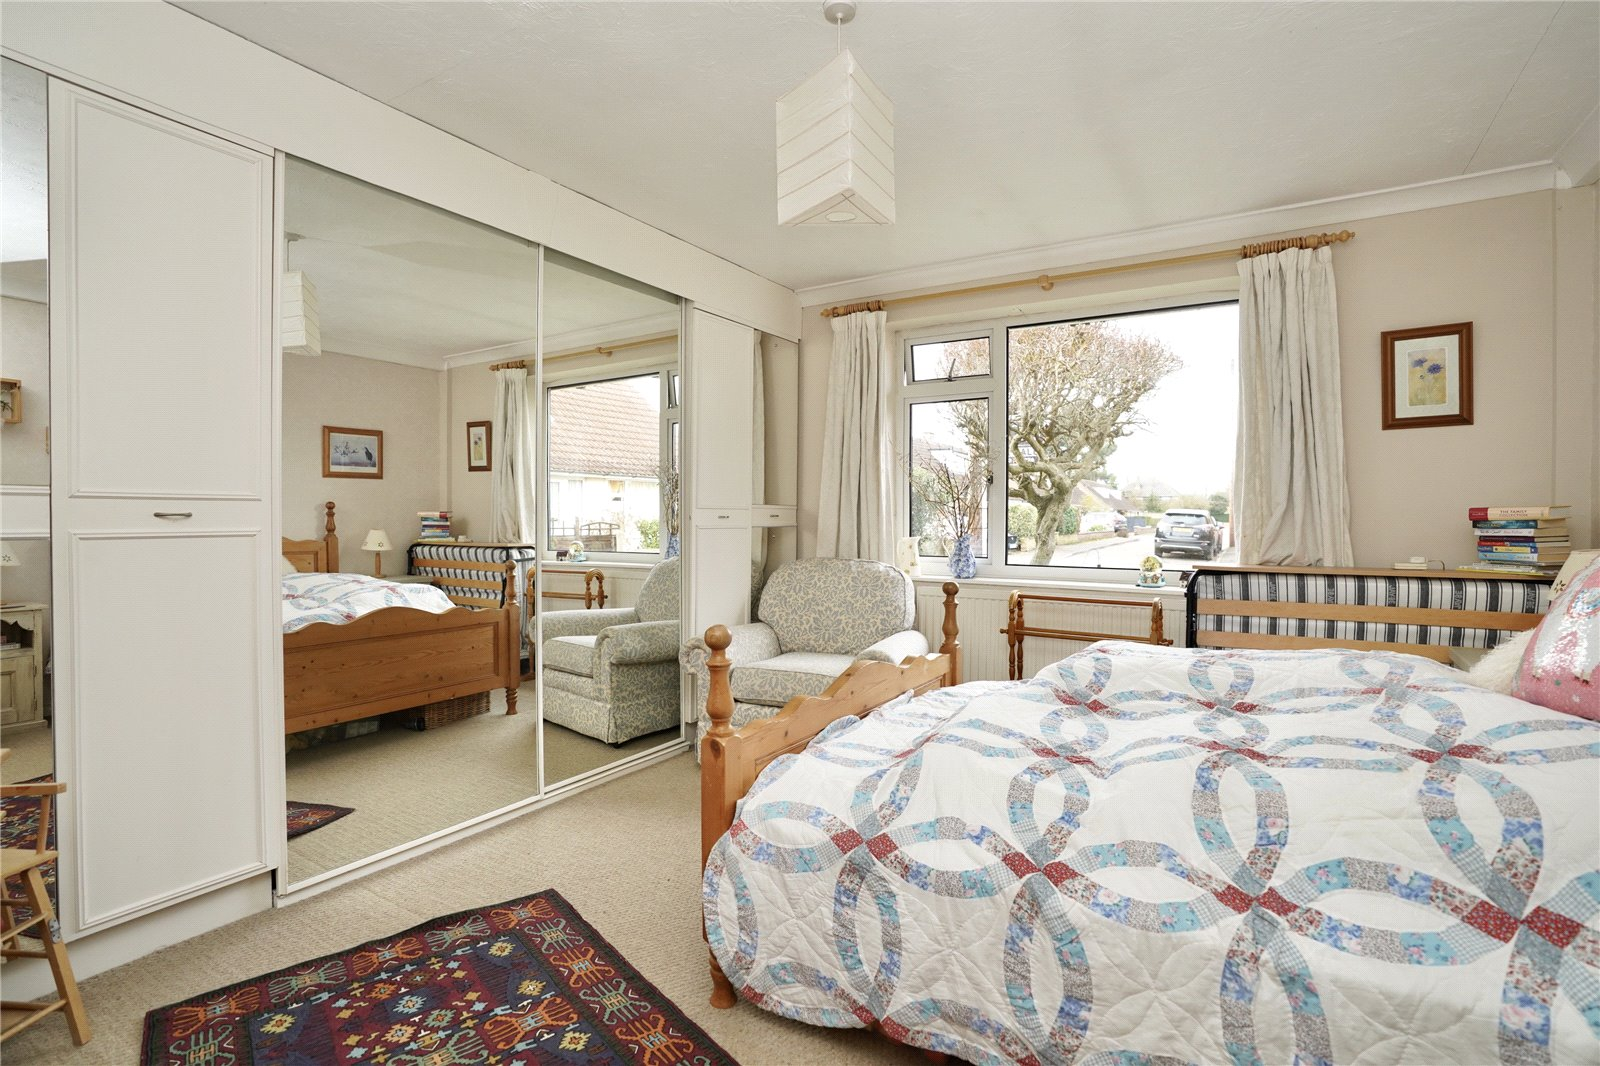 3 bed house for sale in Hemingford Grey, PE28 9BS  - Property Image 9